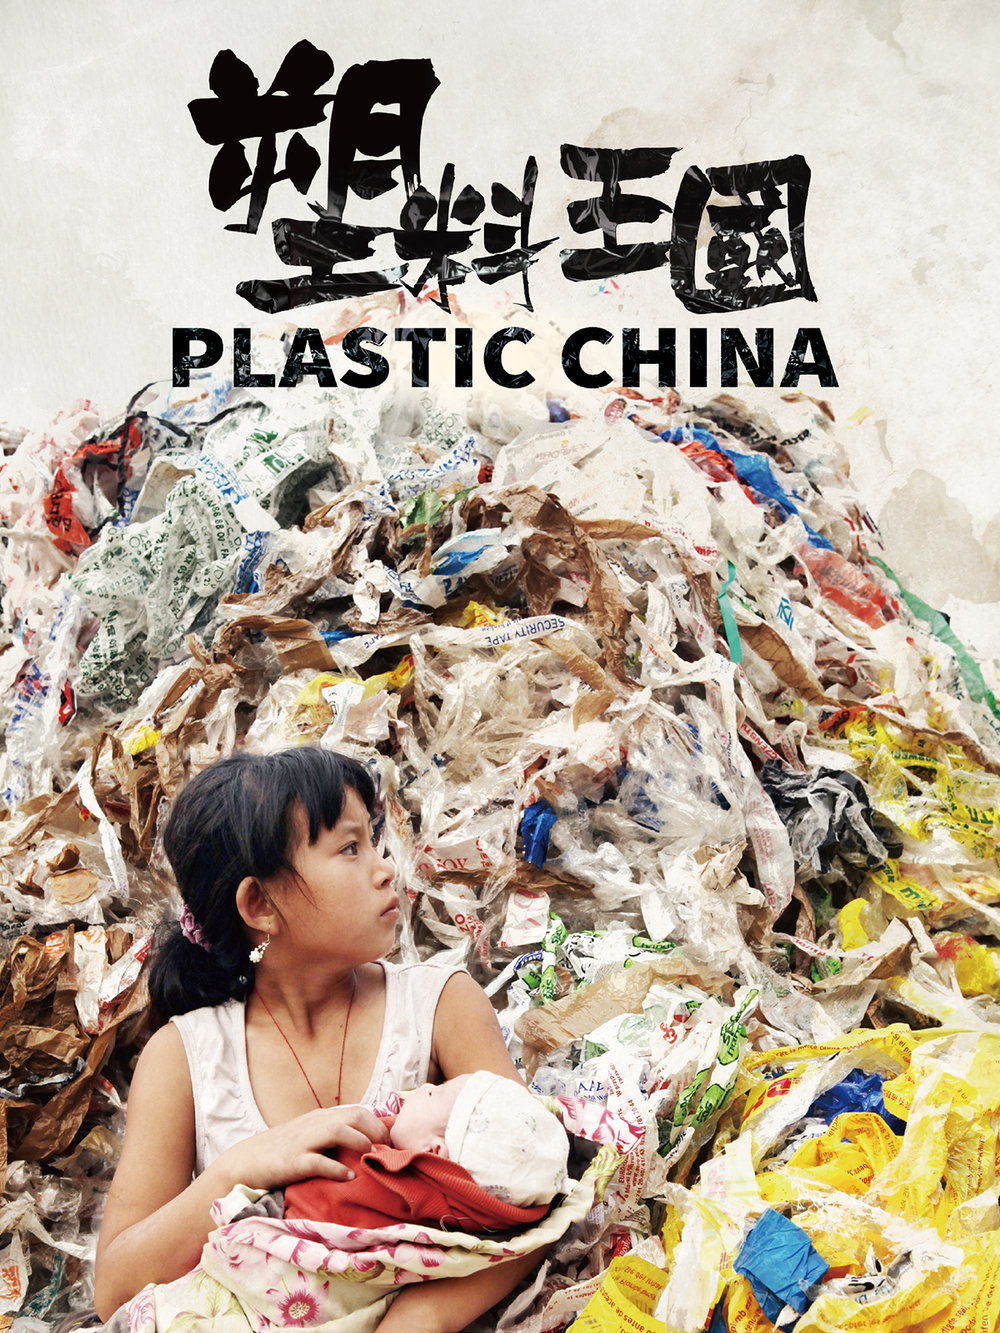 Plastic China Poster.jpg